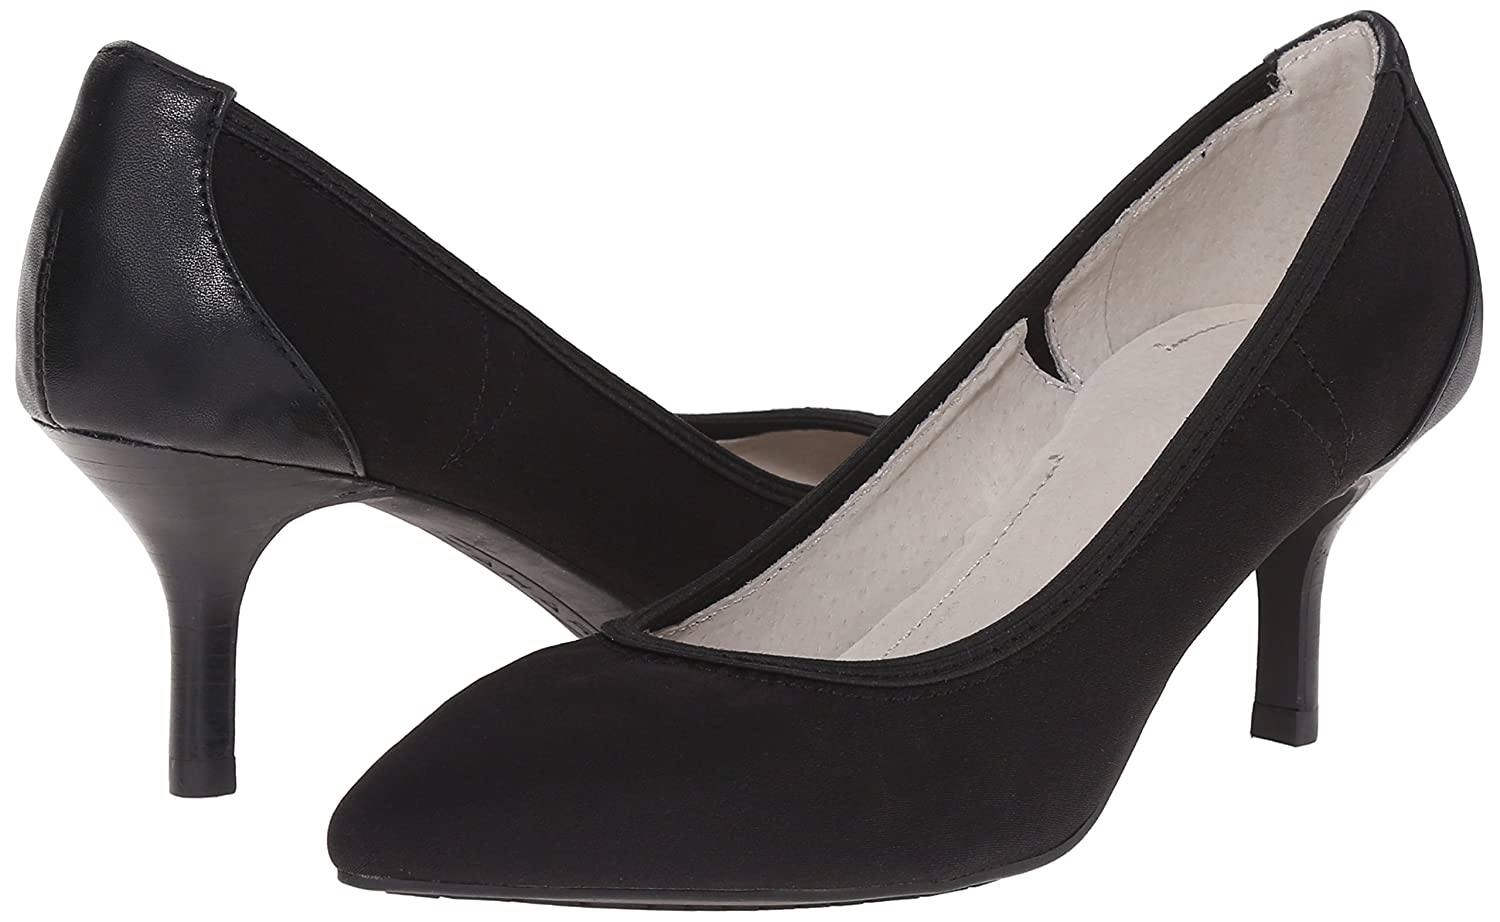 stephanie main heels comforter heel mary black casuals jane comfortable womens essence aetrex